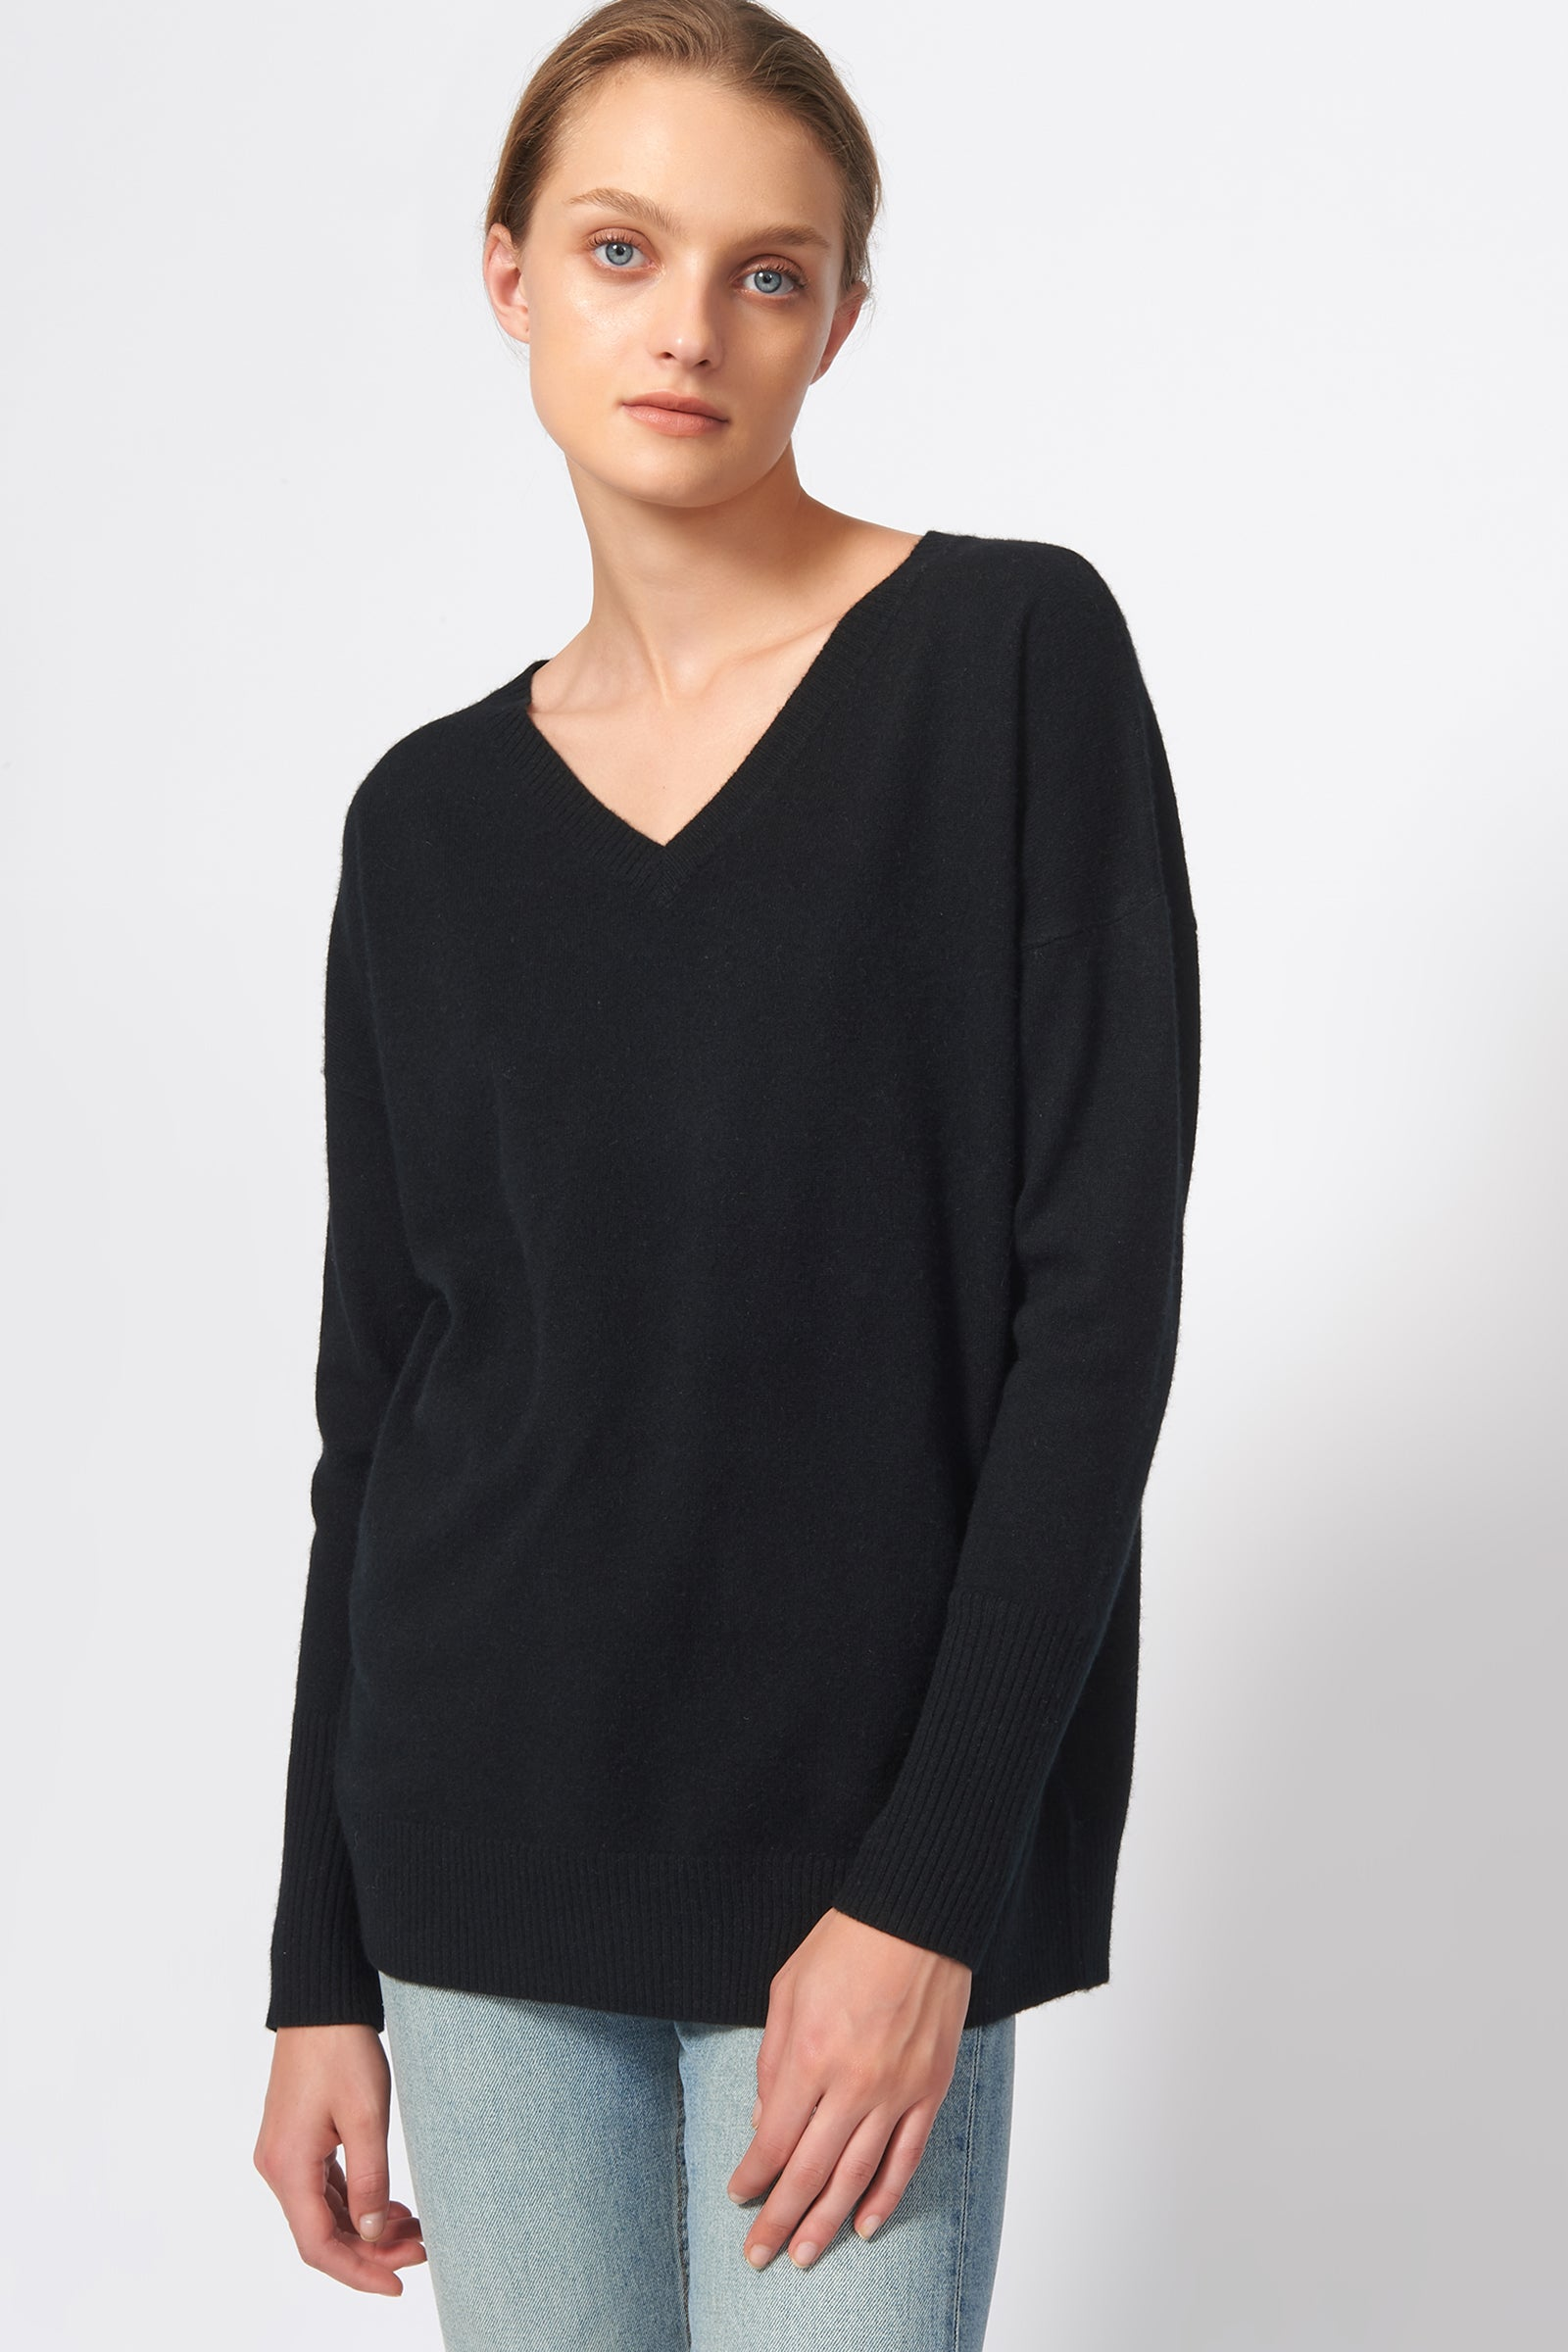 Kal Rieman Cashmere V Neck in Black on Model Front View